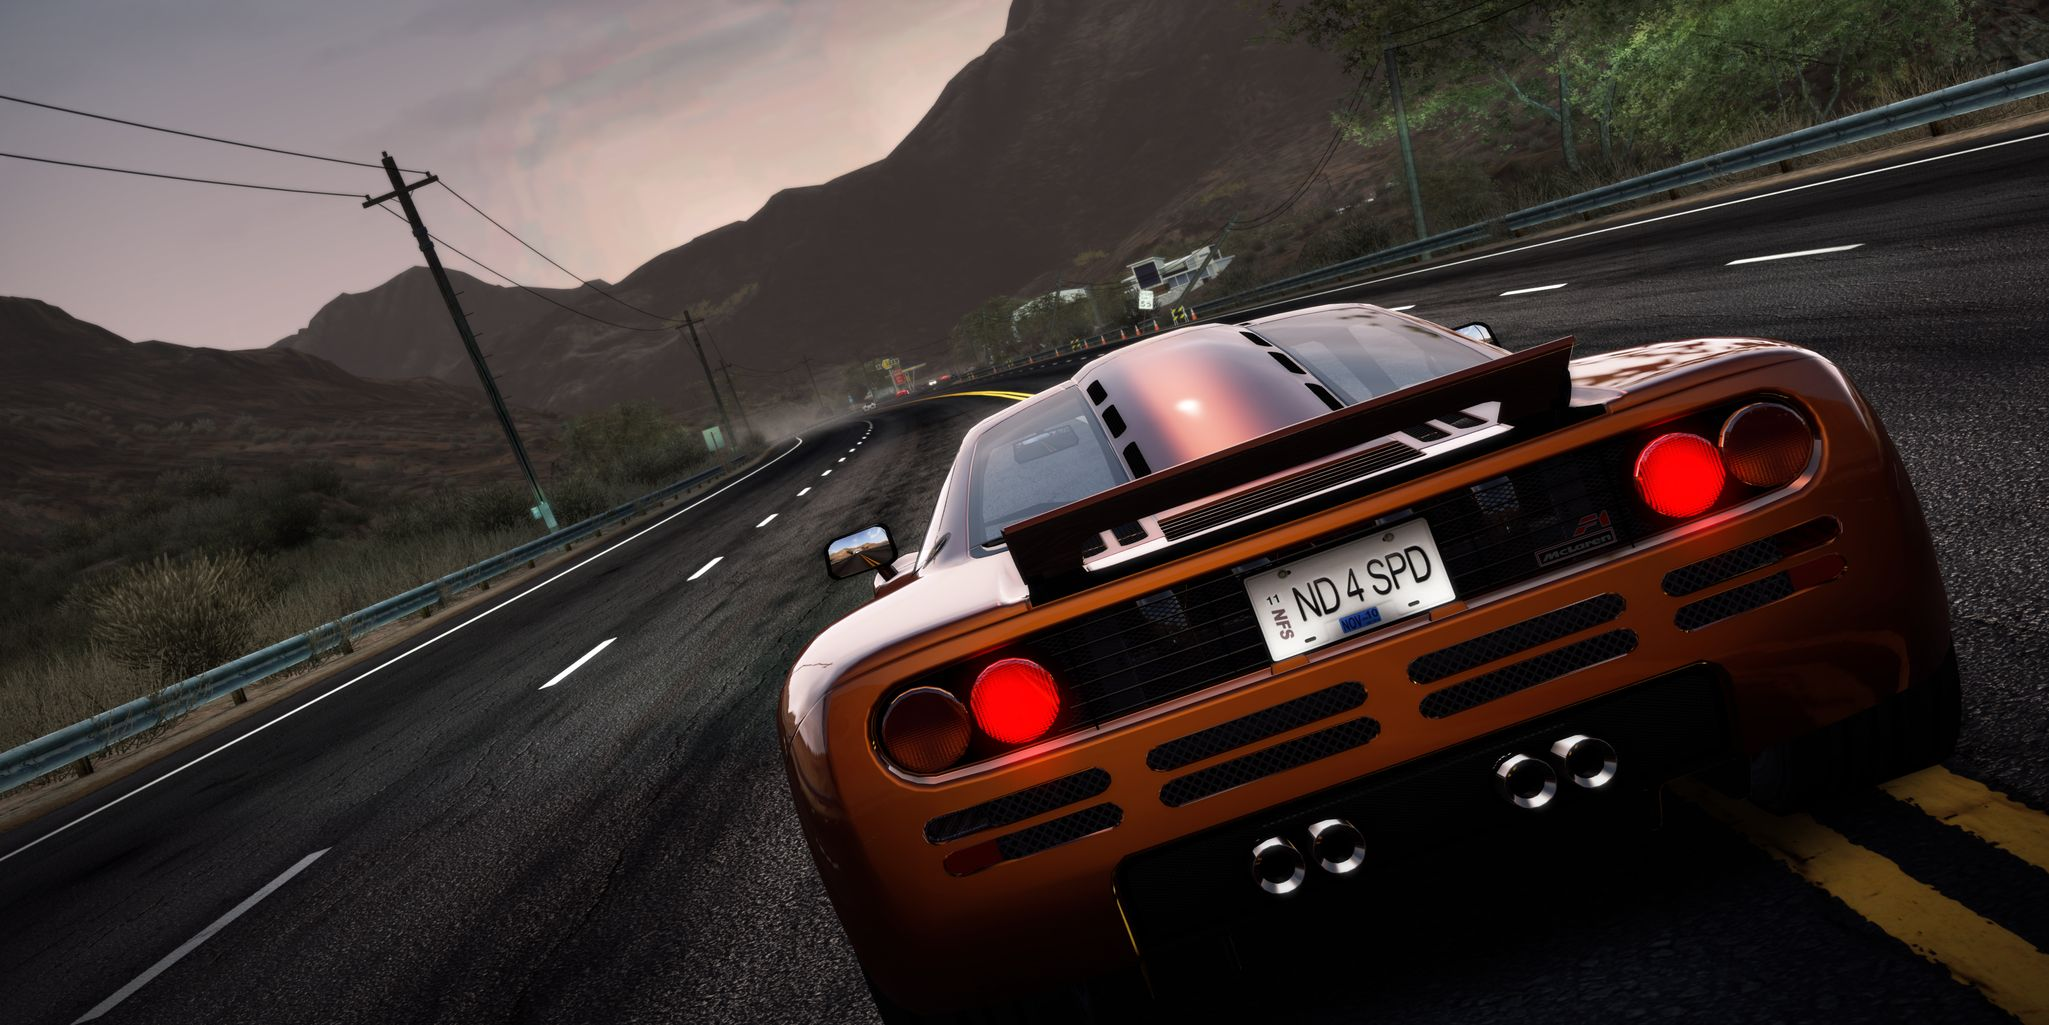 Need For Speed Hot Pursuit Criterion Games 2010 All Clear Tools And Tricks 4k Rendering Antialiasing Computer Wallpaper Hd Car Wallpapers New Wallpaper Hd